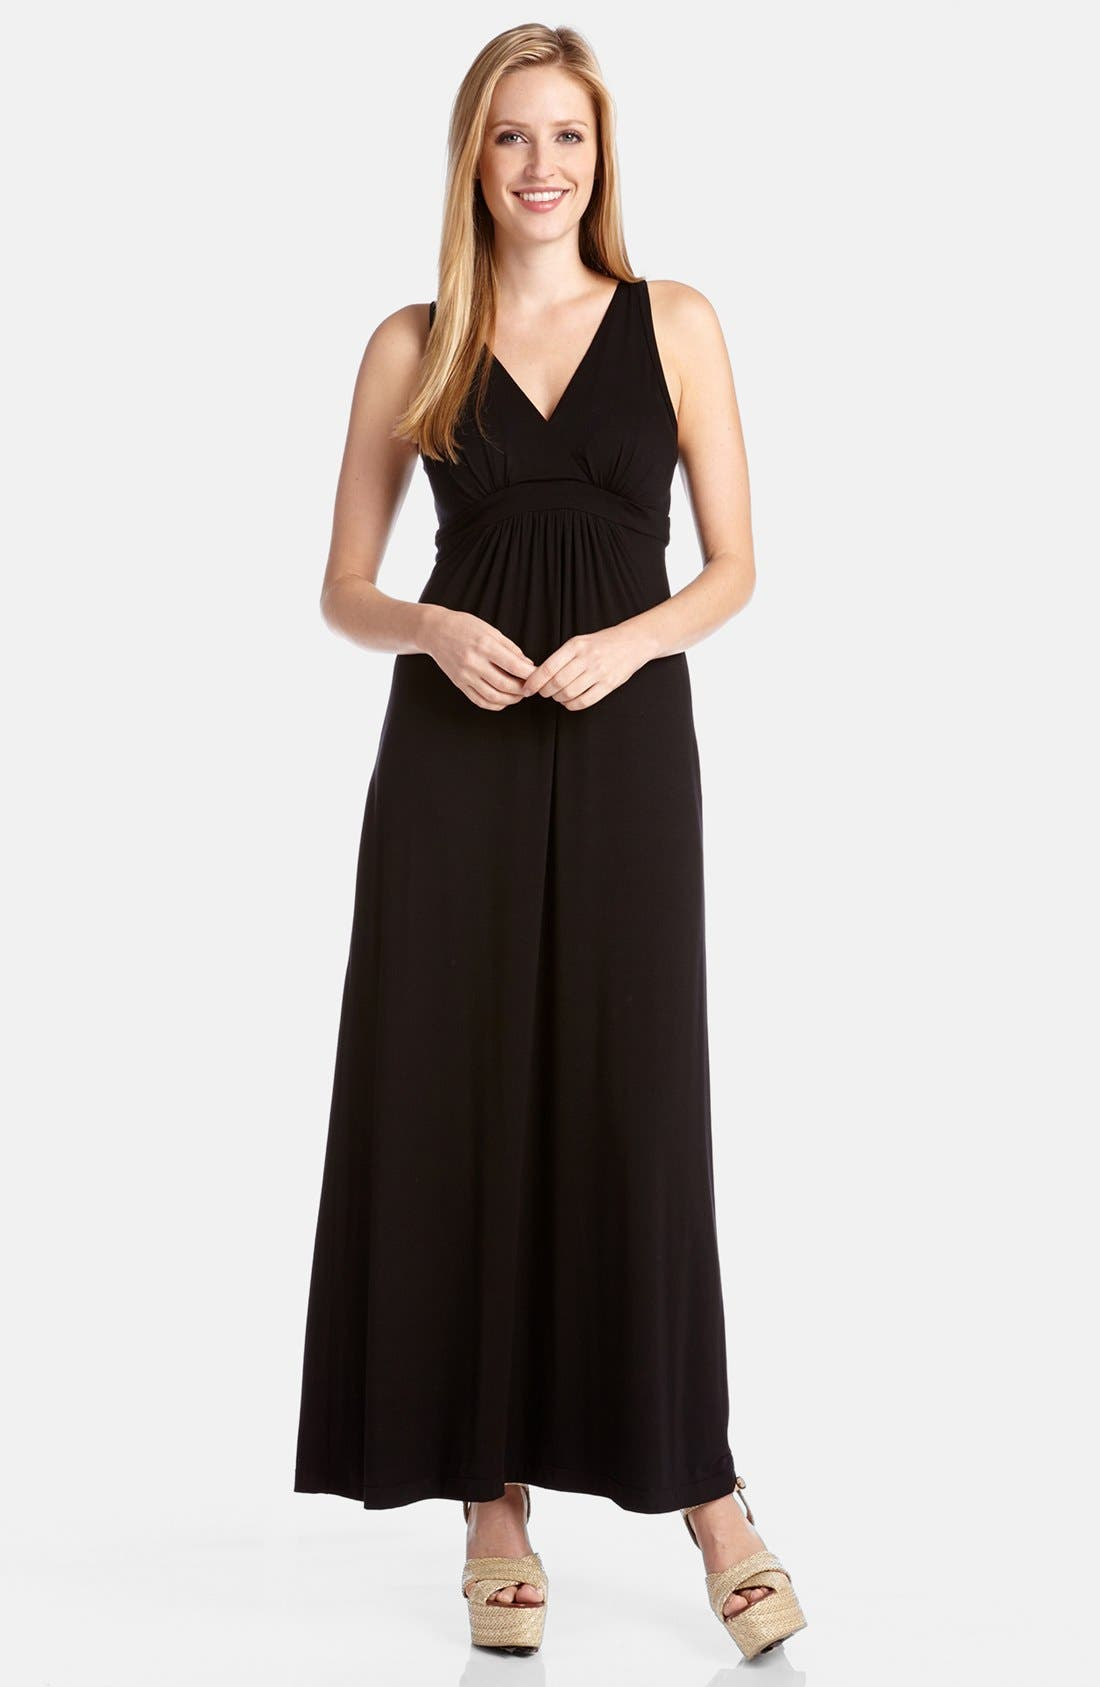 Main Image - Karen Kane 'Julie' Surplice Jersey Maxi Dress